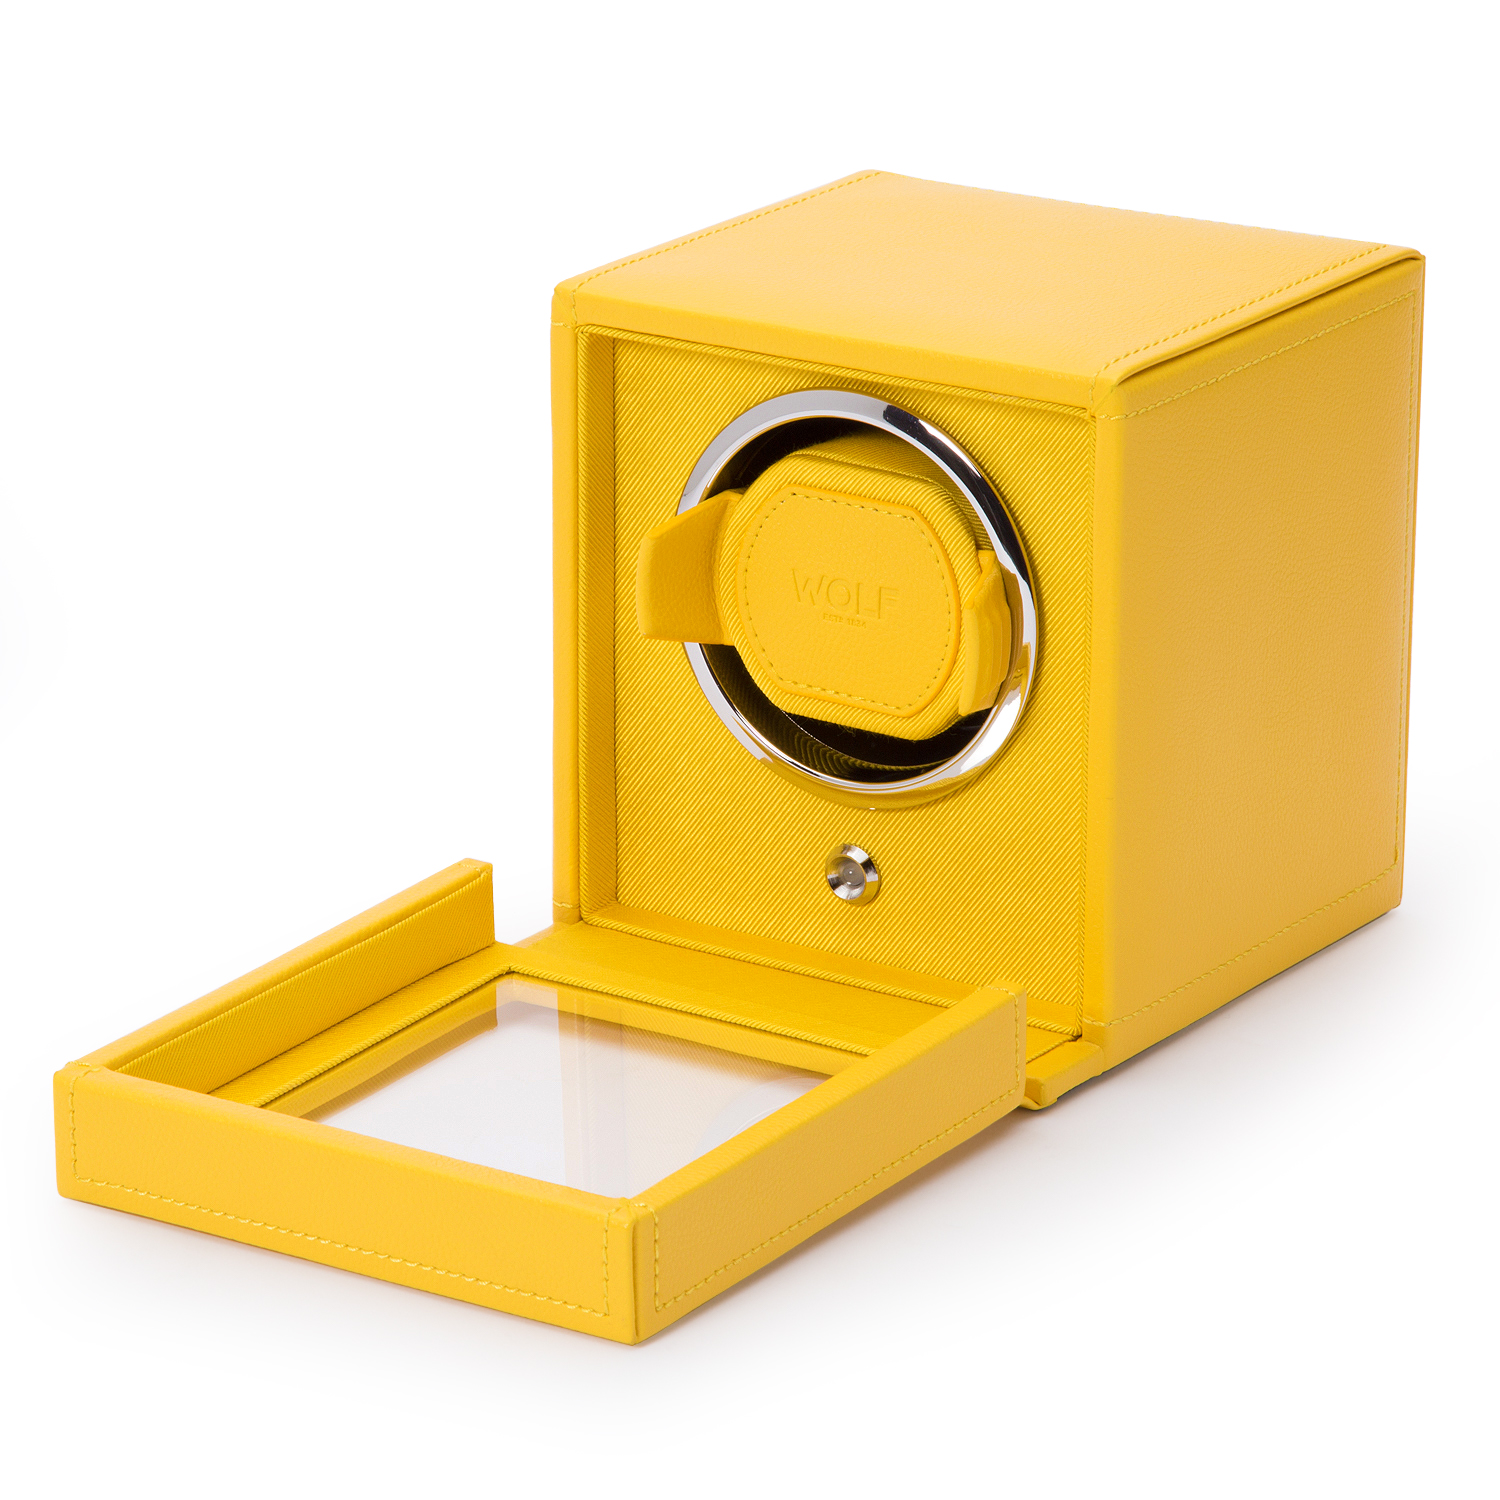 WOLF Cub Single Watch Winder w Cover in Yellow